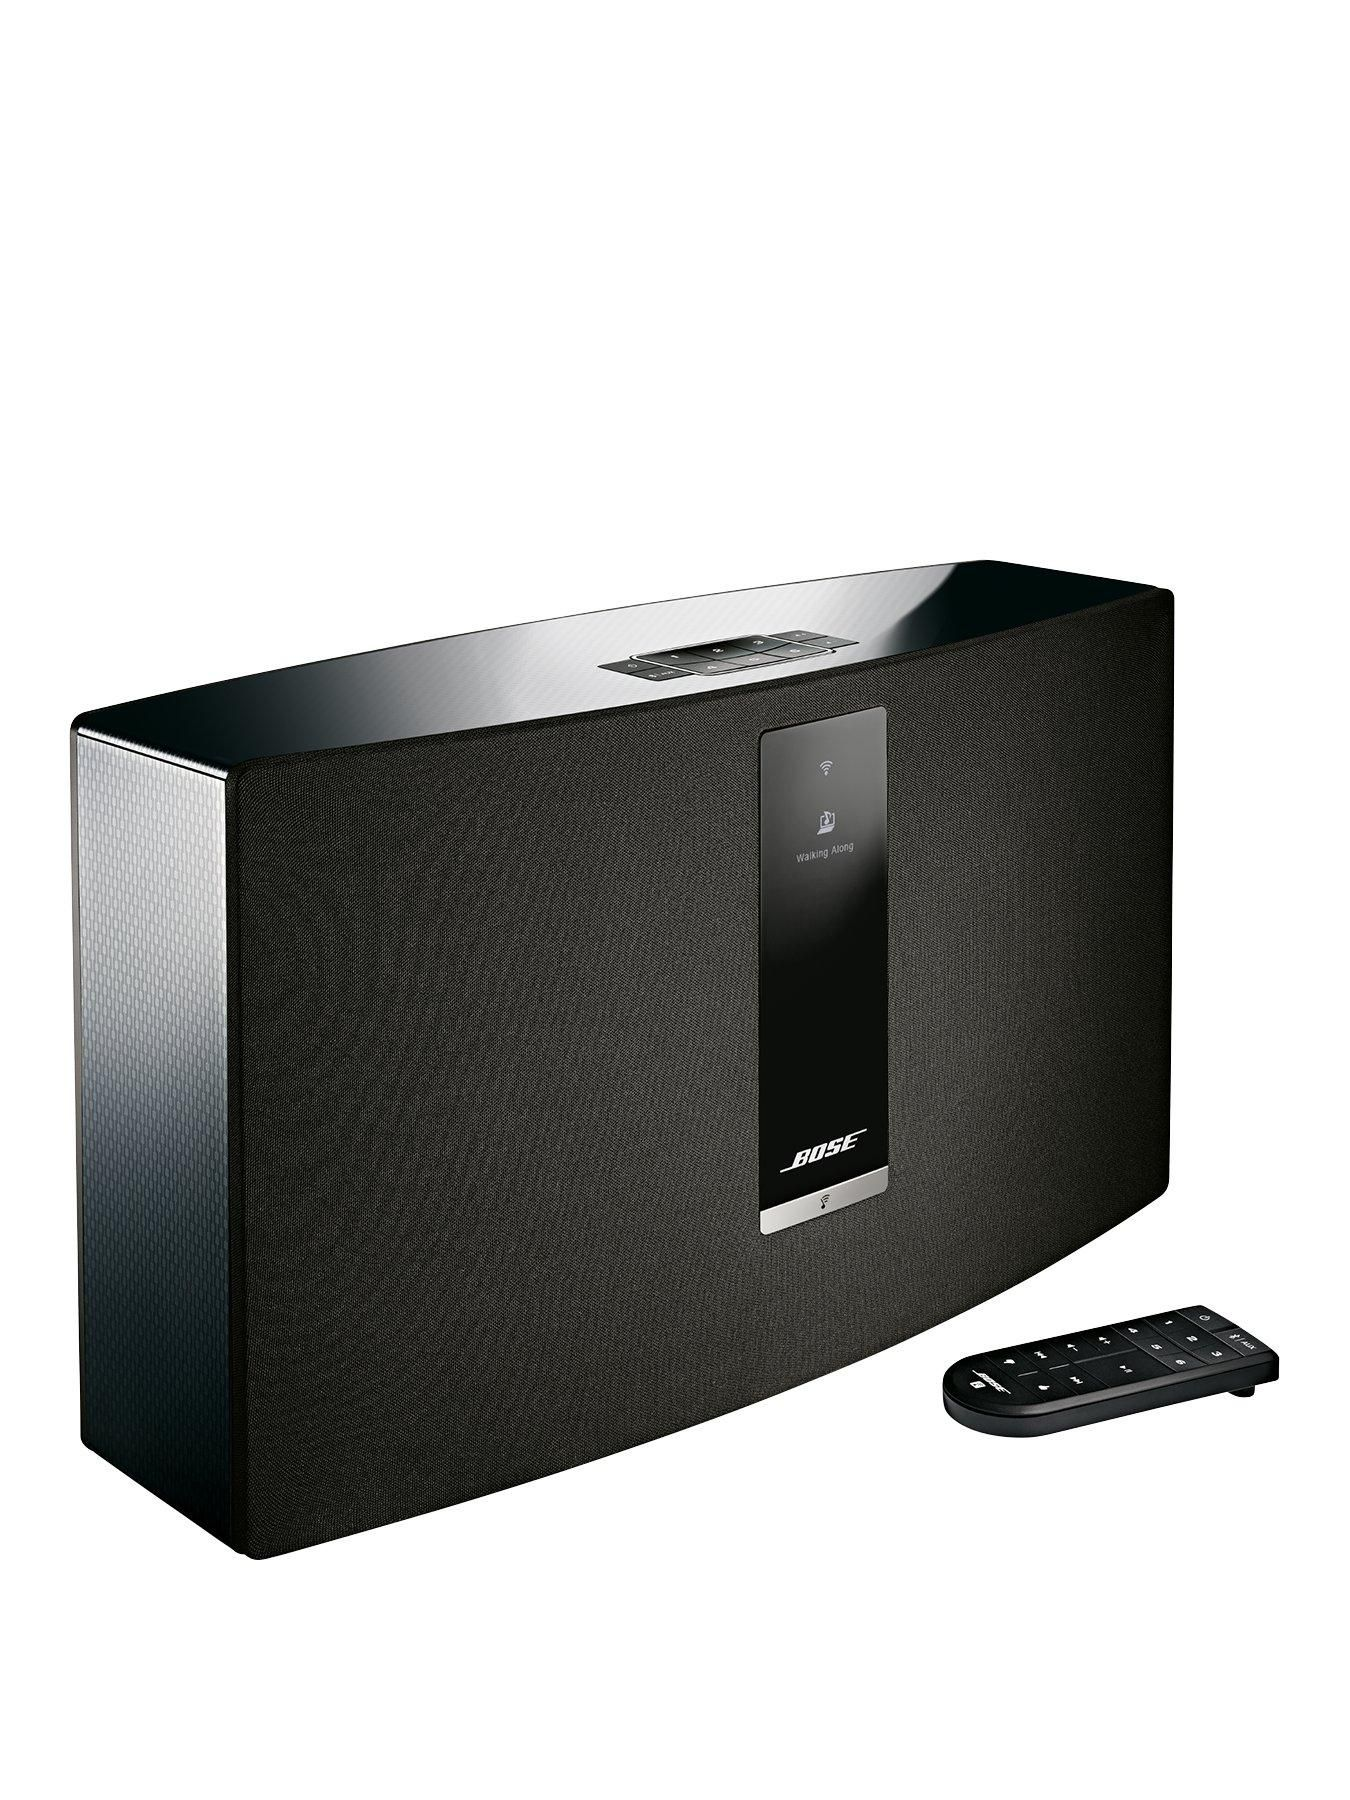 Bose Soundtouch® 30 Iii Wireless Bluetooth® Music System - Black - Black - #musicsystem